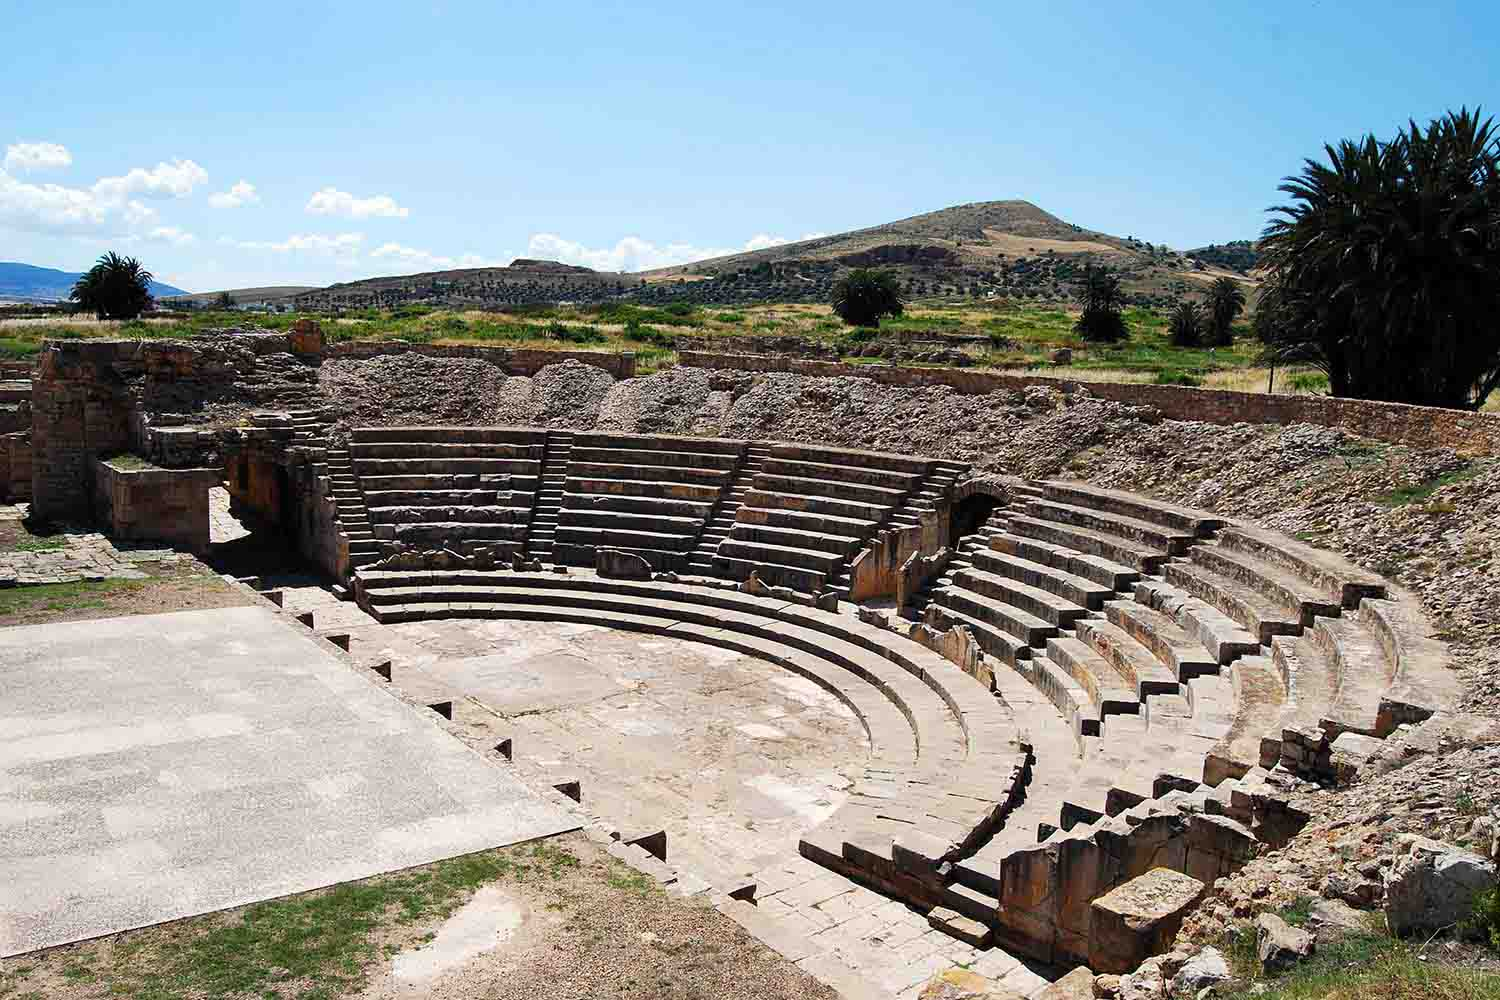 Amphitheatre at the Archaeological Site of Bulla Regia